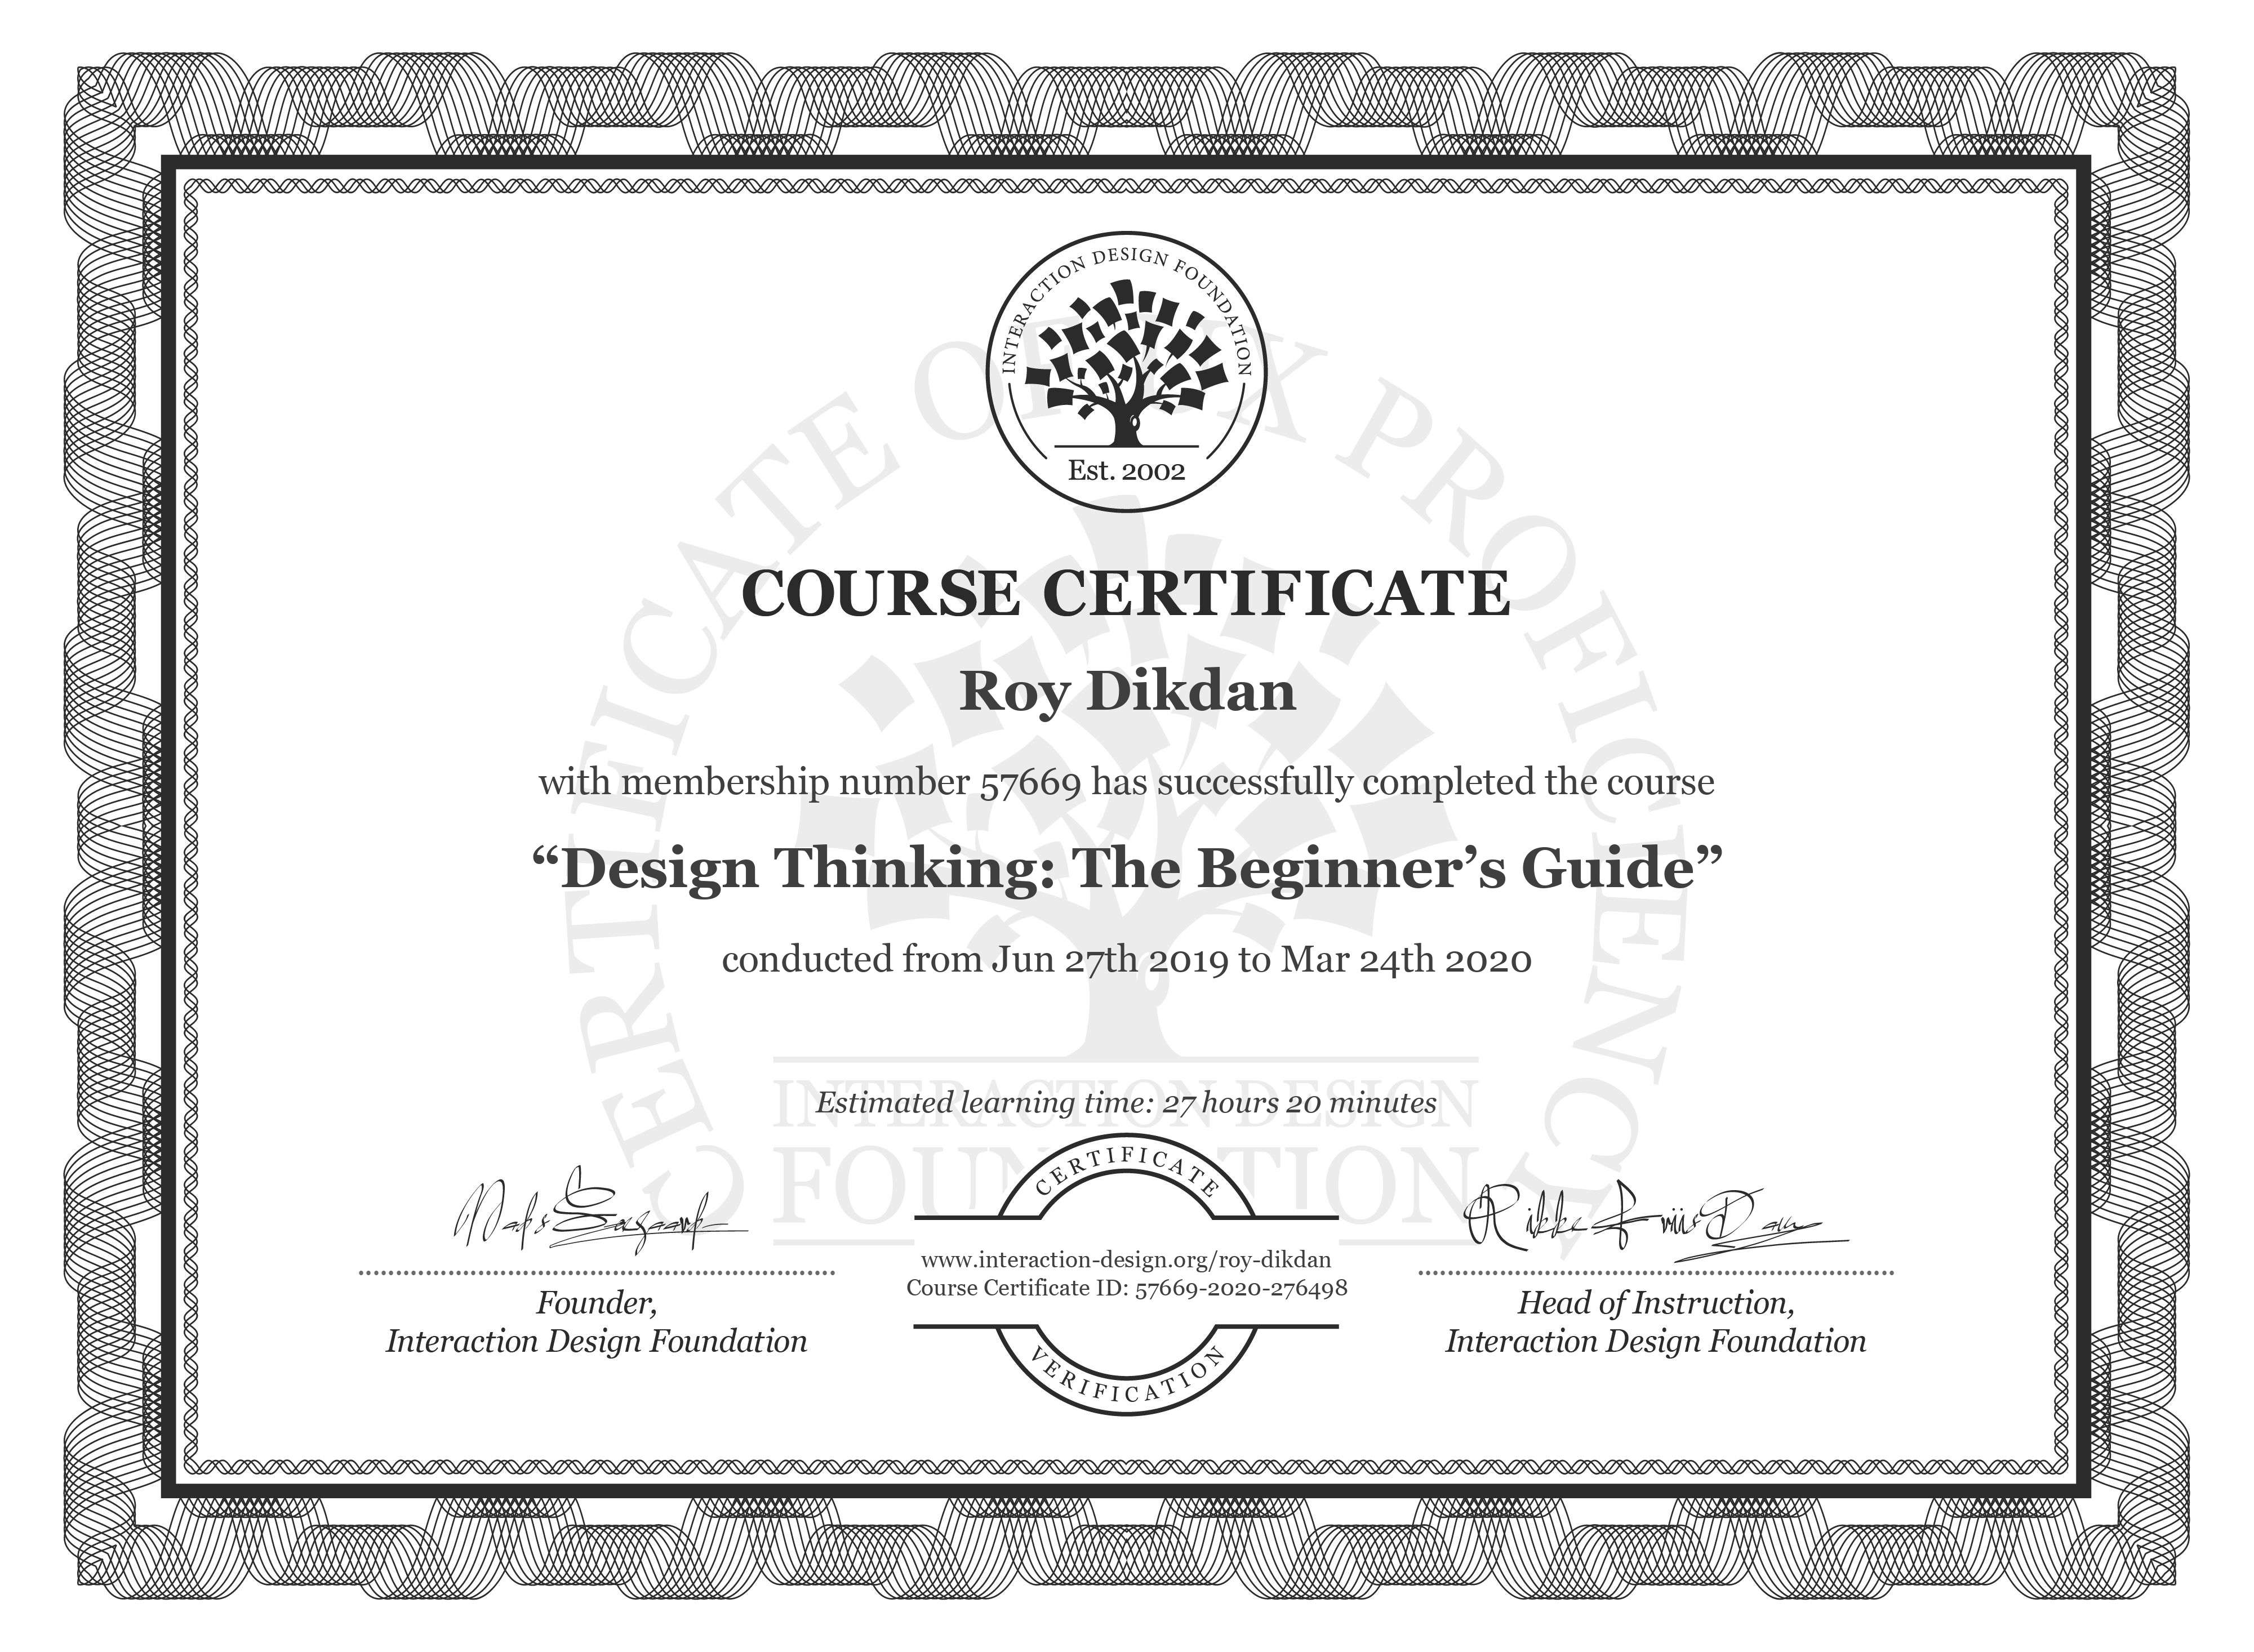 Roy Dikdan's Course Certificate: Design Thinking: The Beginner's Guide